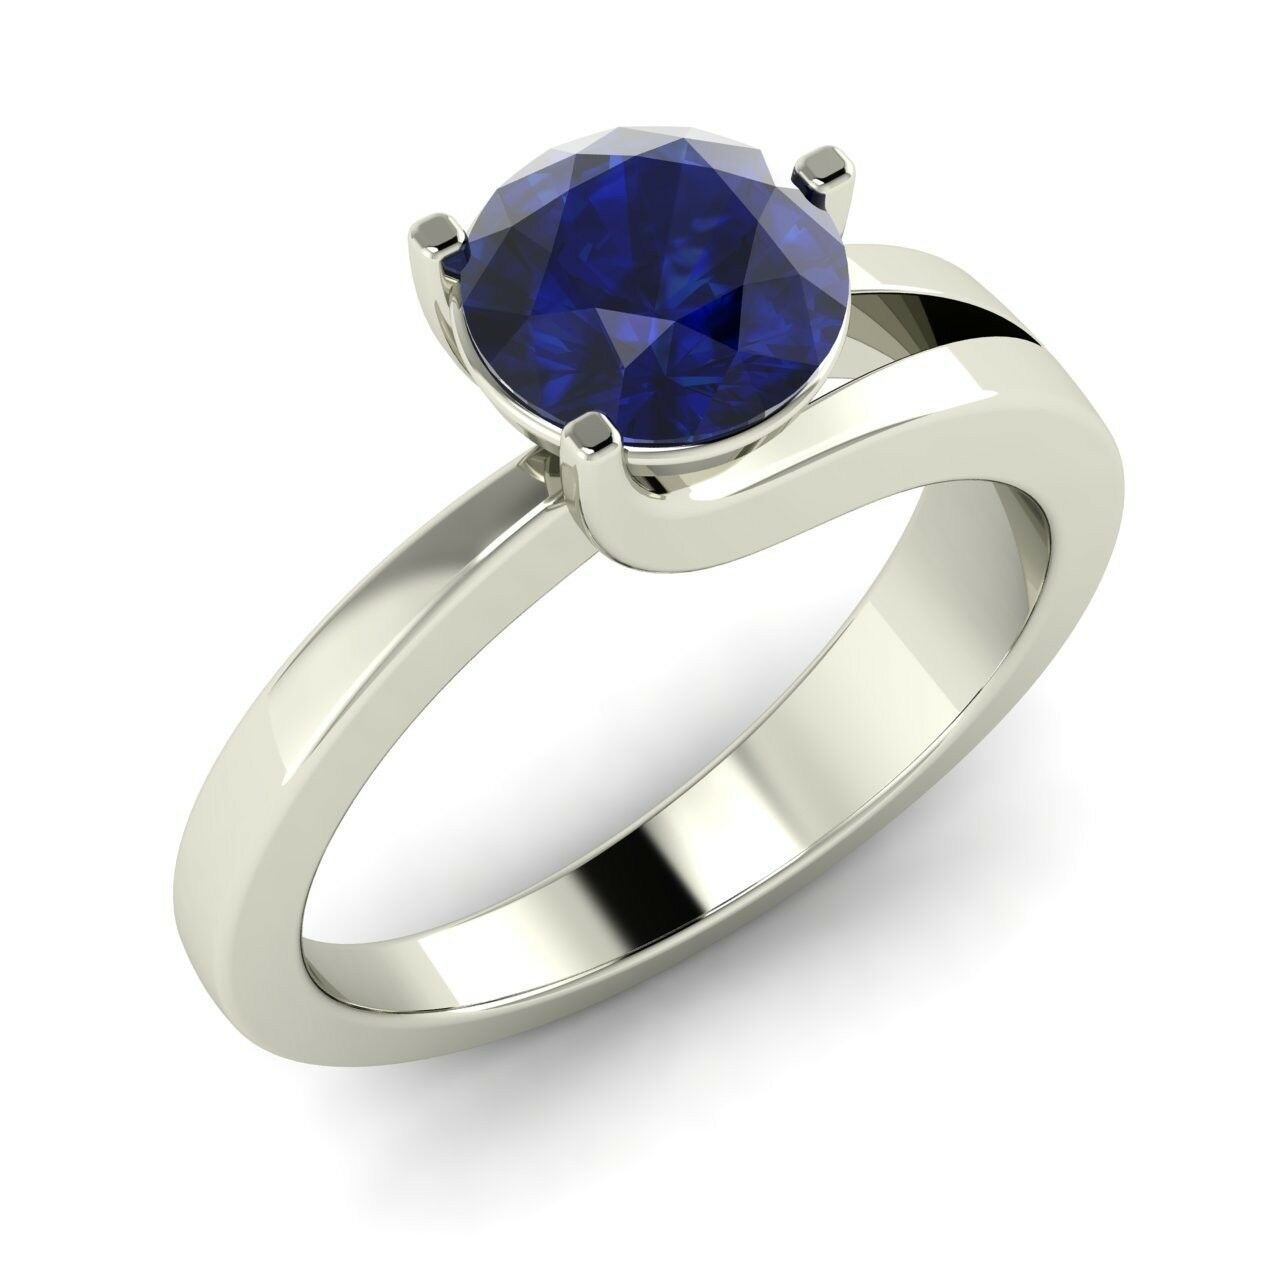 Certified 1.01 Ct Natural bluee Sapphire Solitaire Engagement Ring 14K White gold